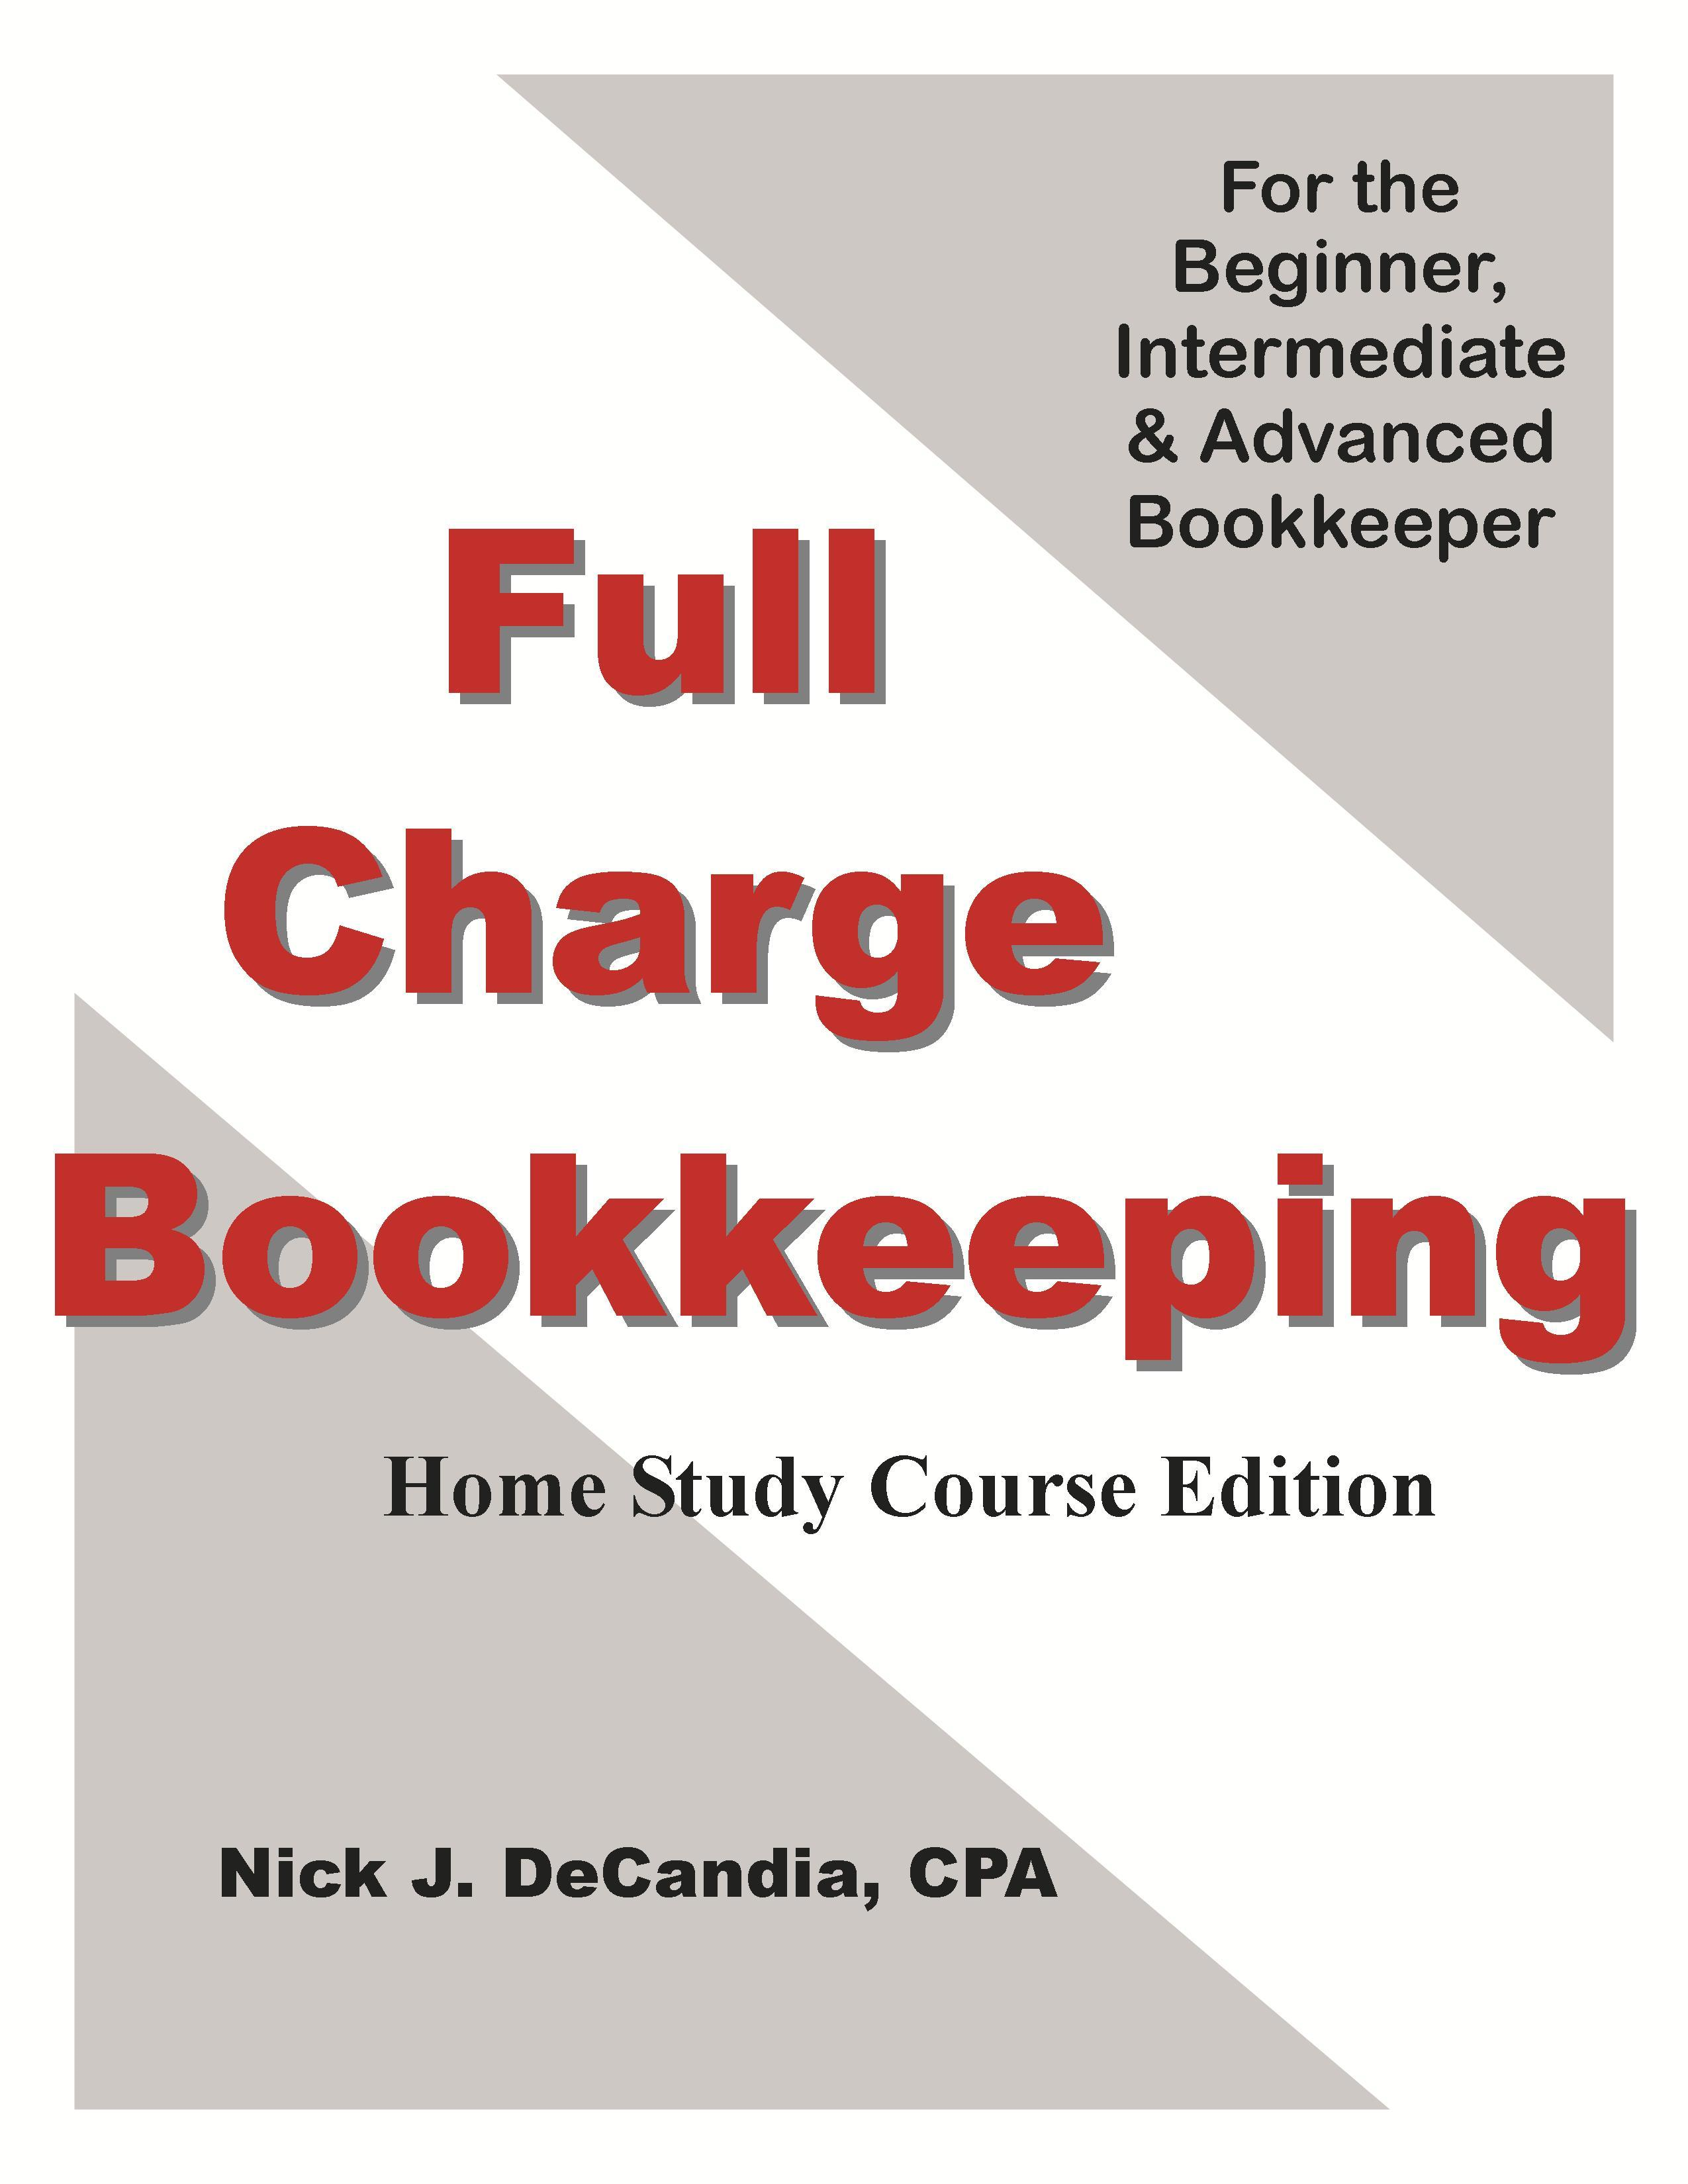 Full-Charge Bookkeeping, For the Beginner, Intermediate & Advanced Bookkeeper, HOME STUDY COURSE EDITION.